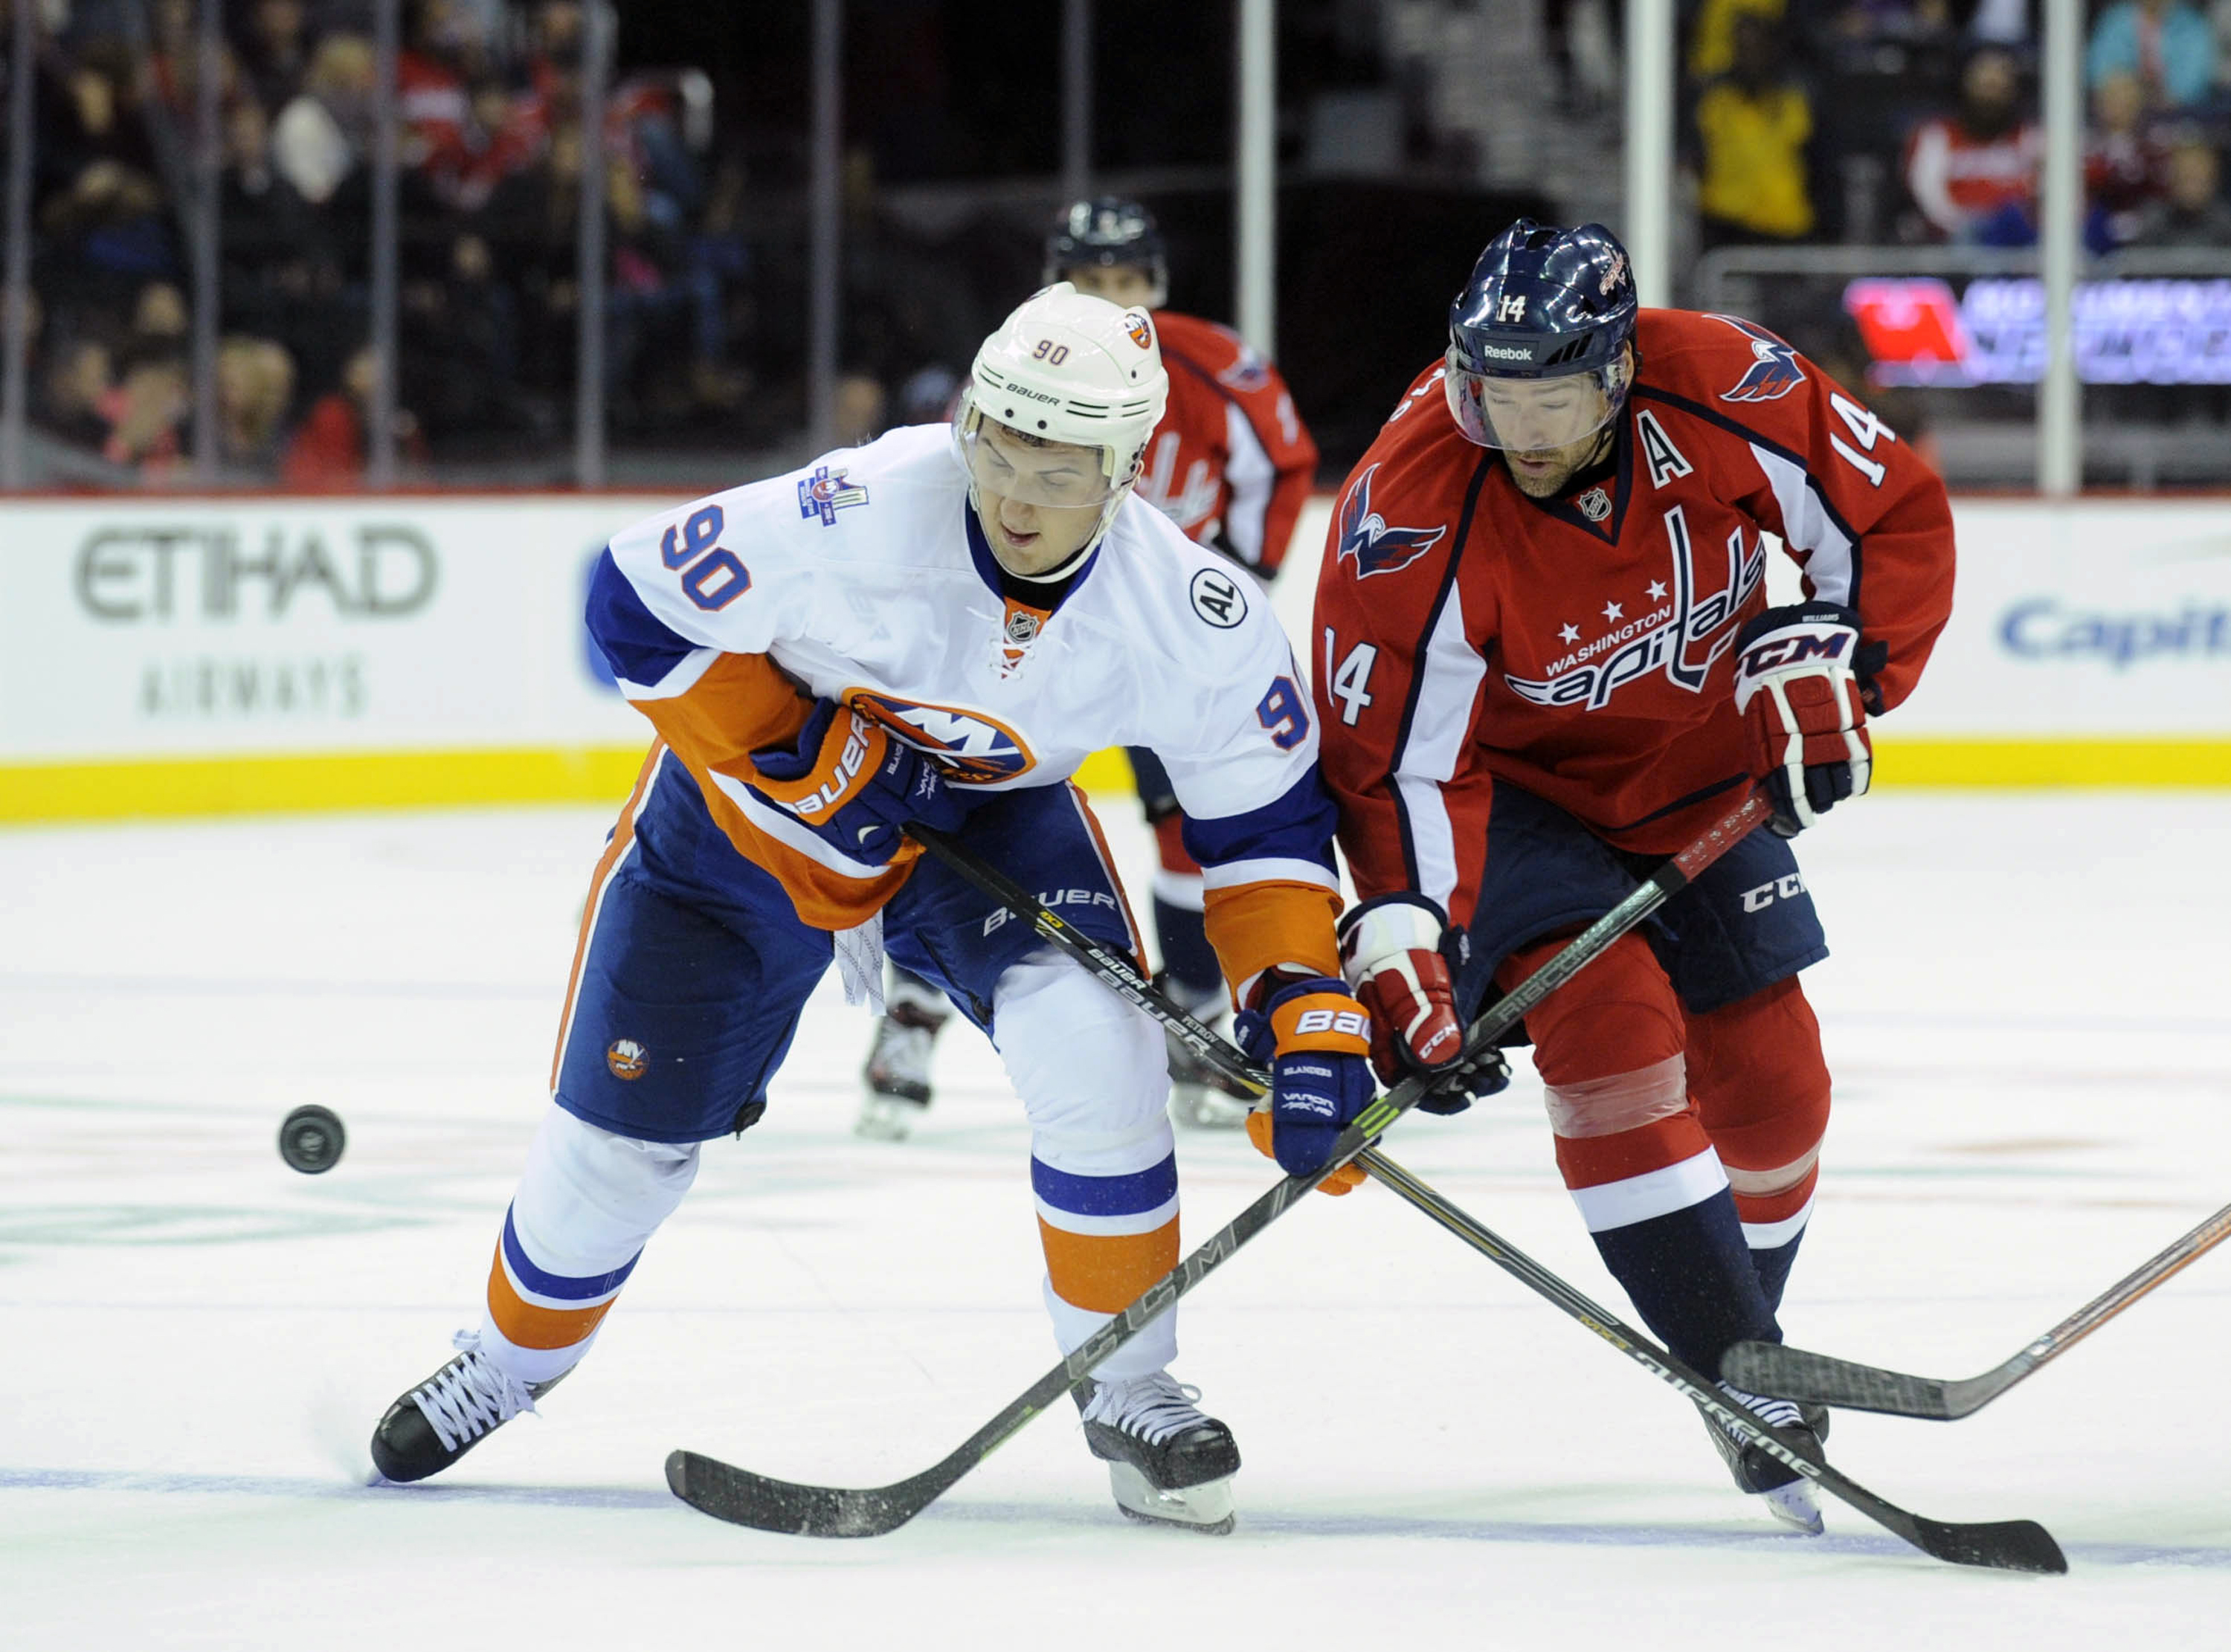 FILE - In this Oct. 4, 2015 file photo, New York Islanders' Kirill Petrov (90) and Washington Capitals' Justin Williams (14) look to the puck during the first period of an NHL hockey game in Washington. Alex Ovechkin has heard enough. Enough speculation a